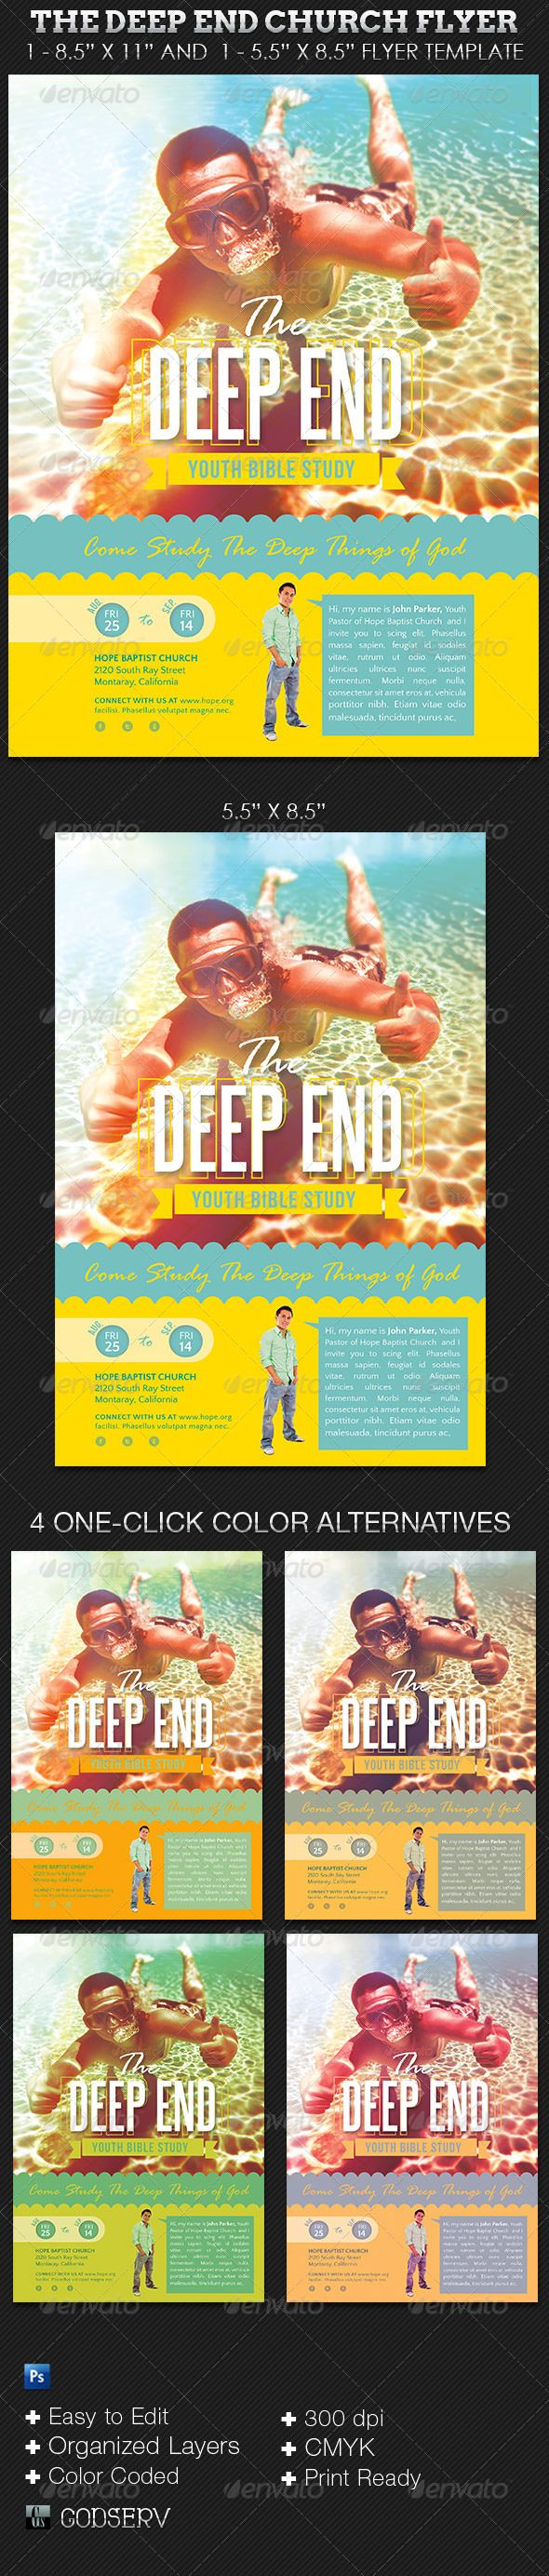 35 best youth flyers images on pinterest church ideas flyers deep end youth church flyer template stopboris Image collections